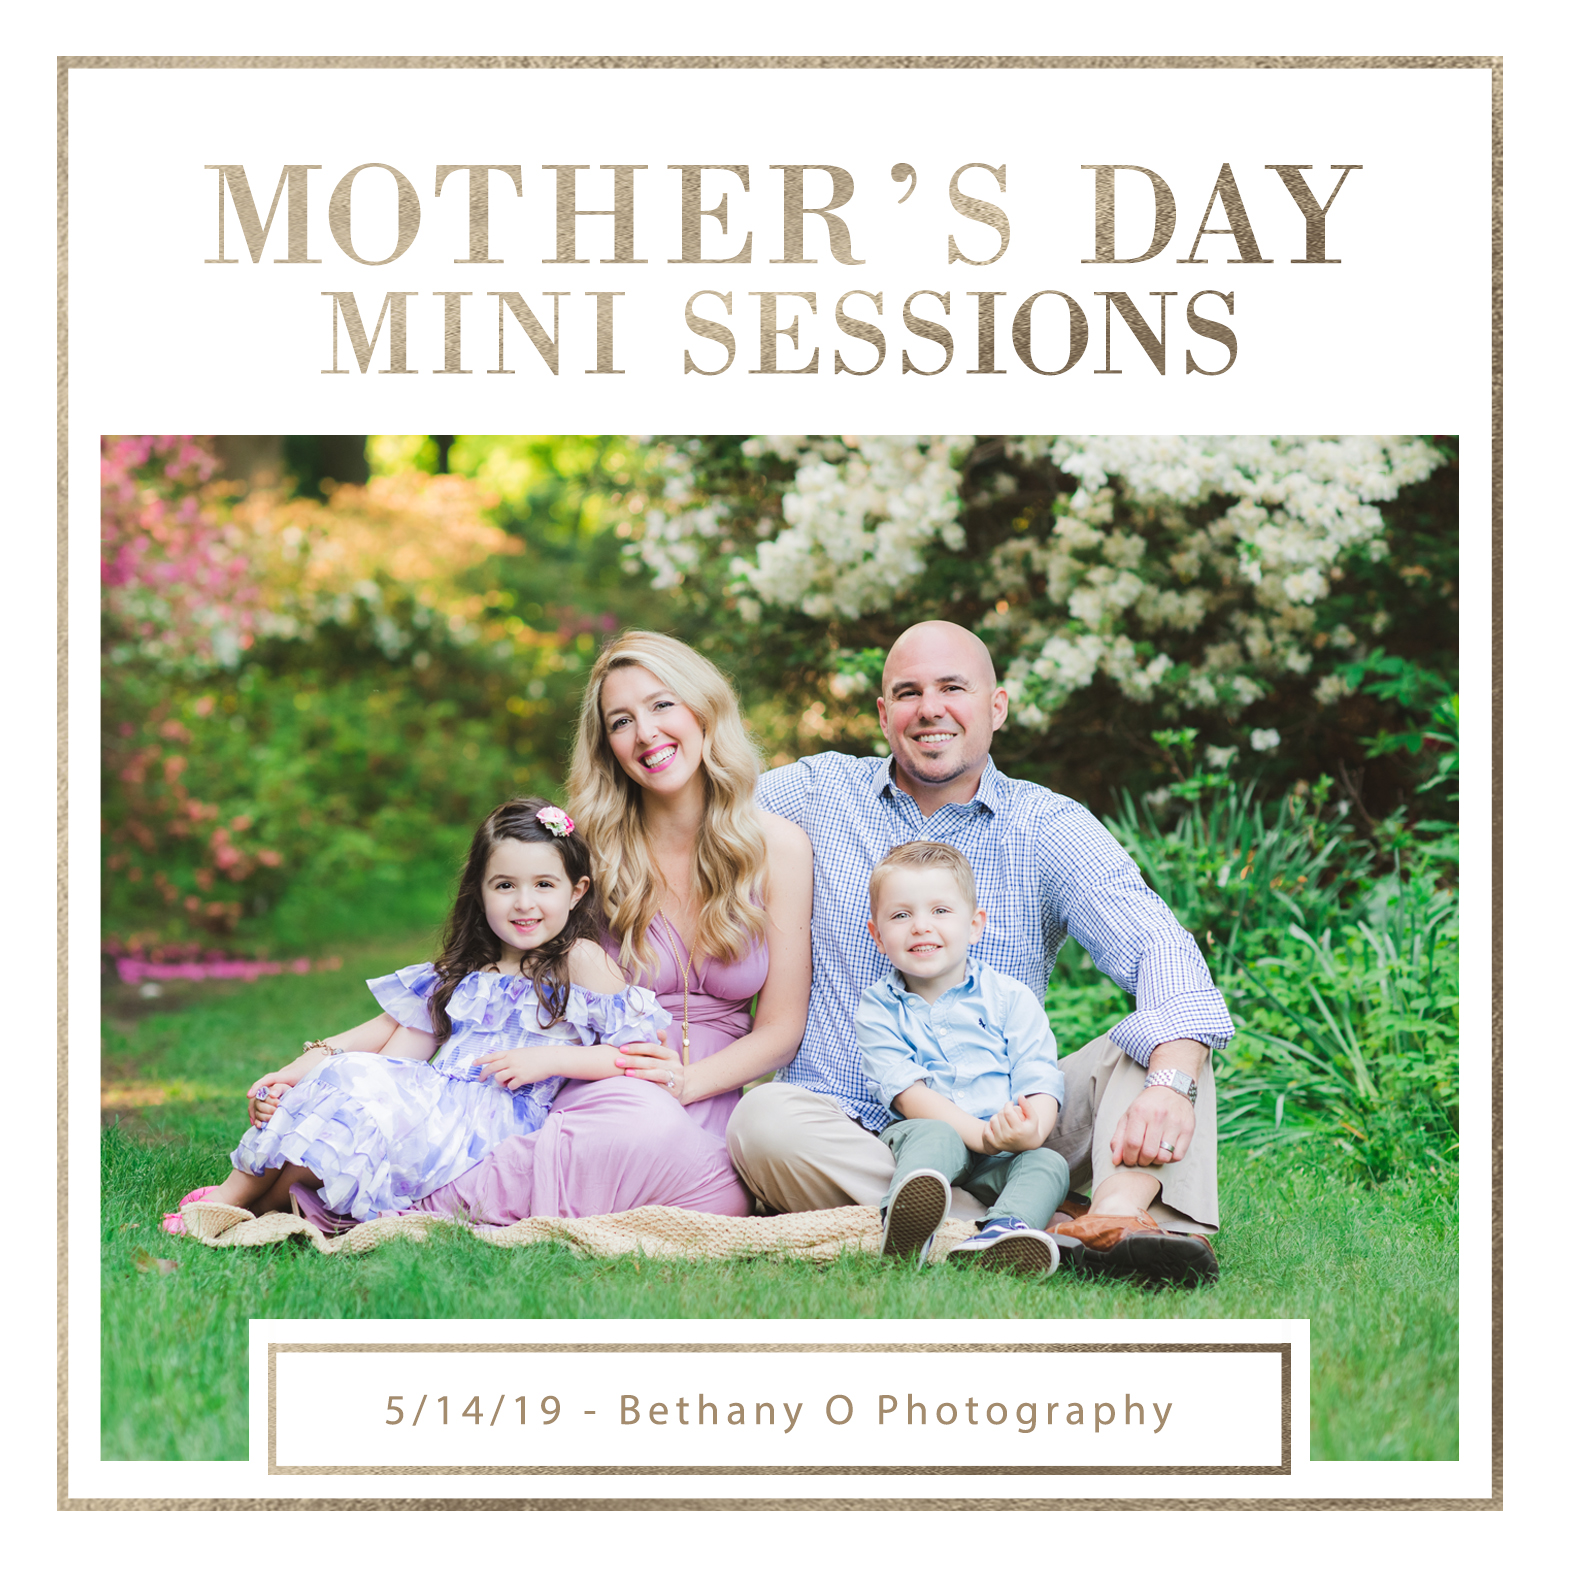 2019 Outdoor Mother's Day Minis - square ad.jpg